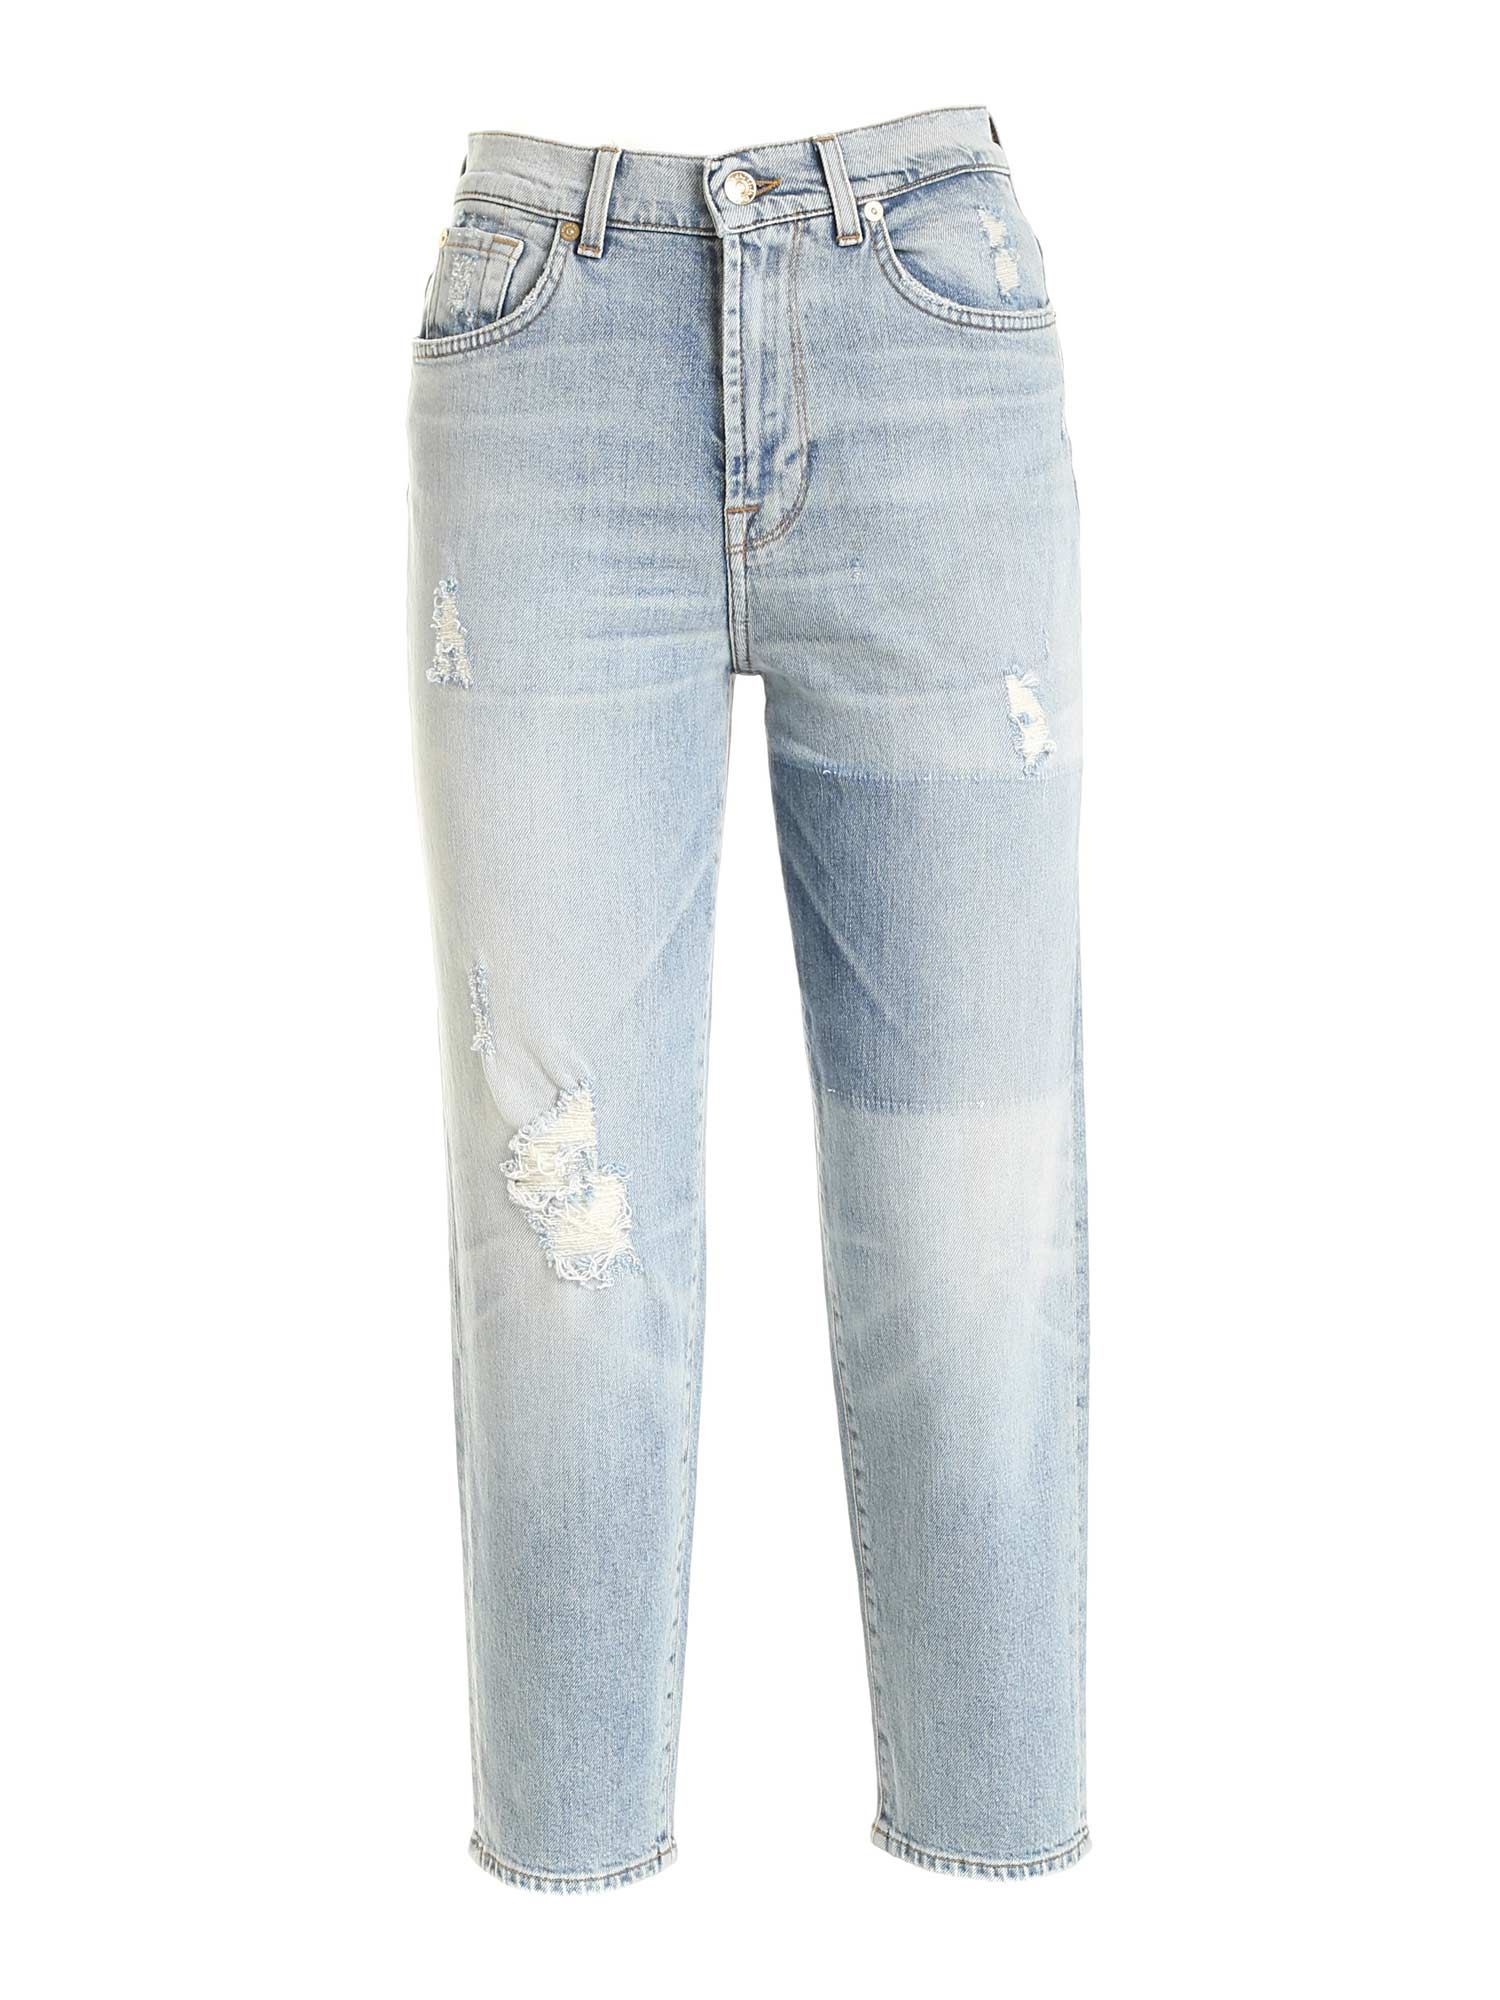 7 For All Mankind MALIA VINTAGE-EFFECT JEANS IN LIGHT BLUE